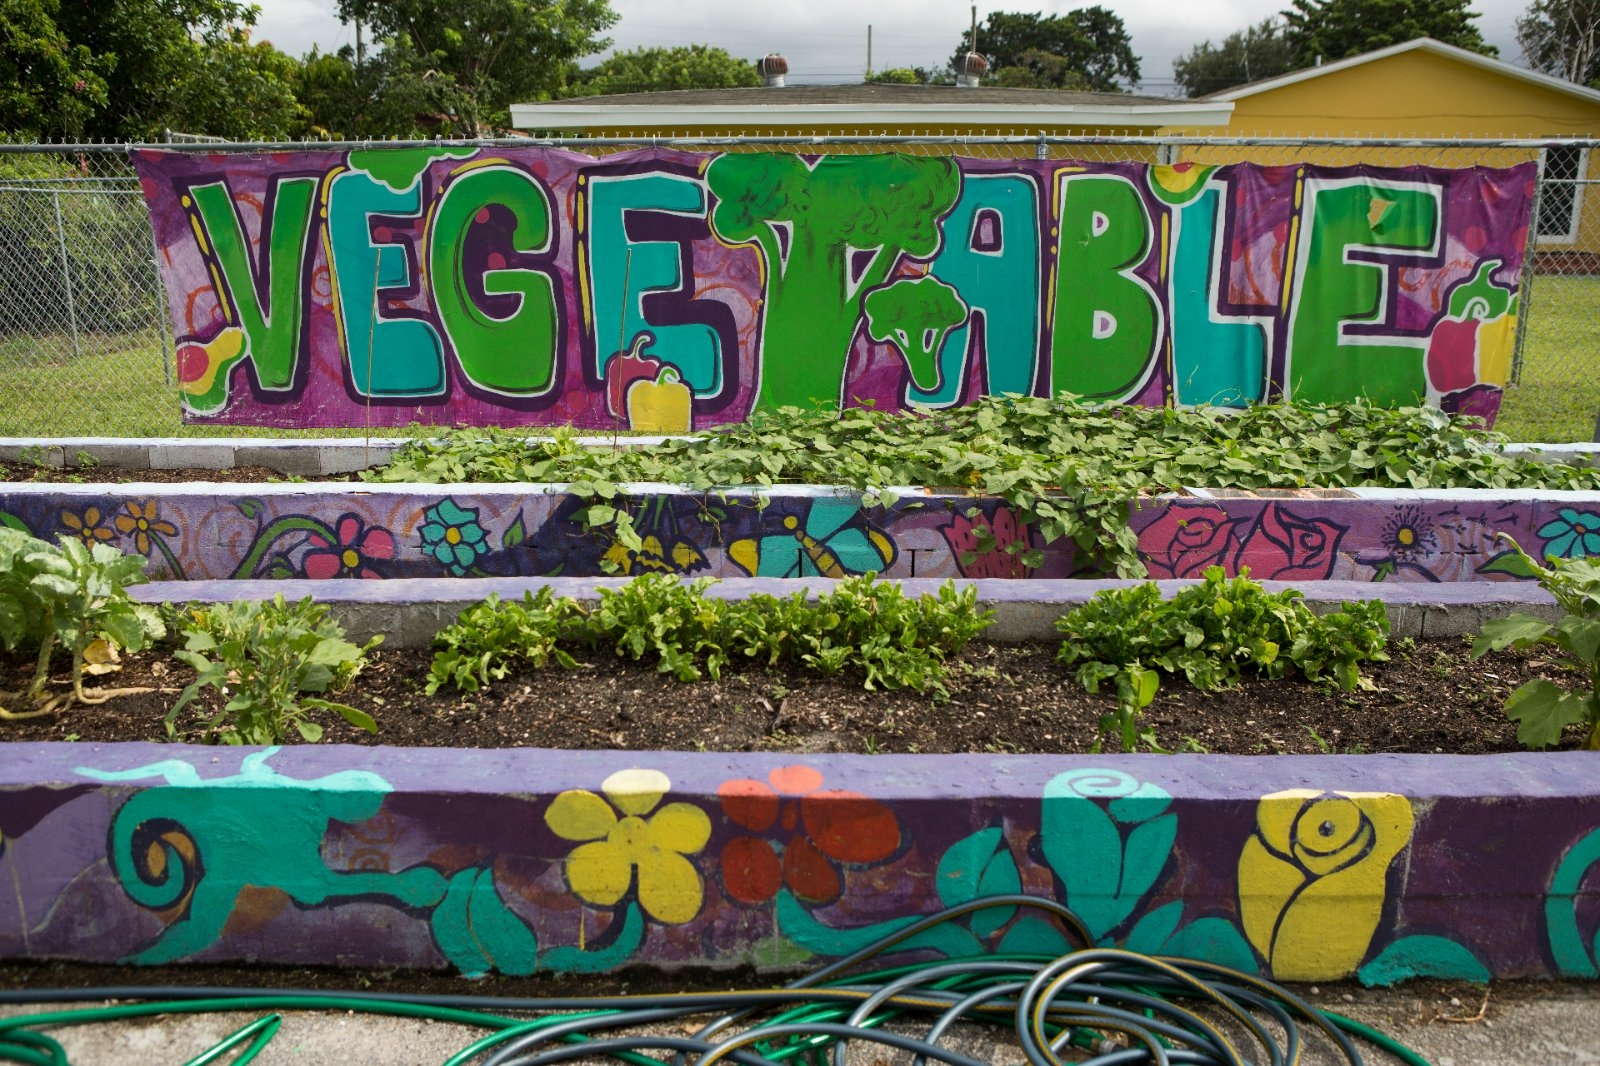 A community garden growing vegetables.